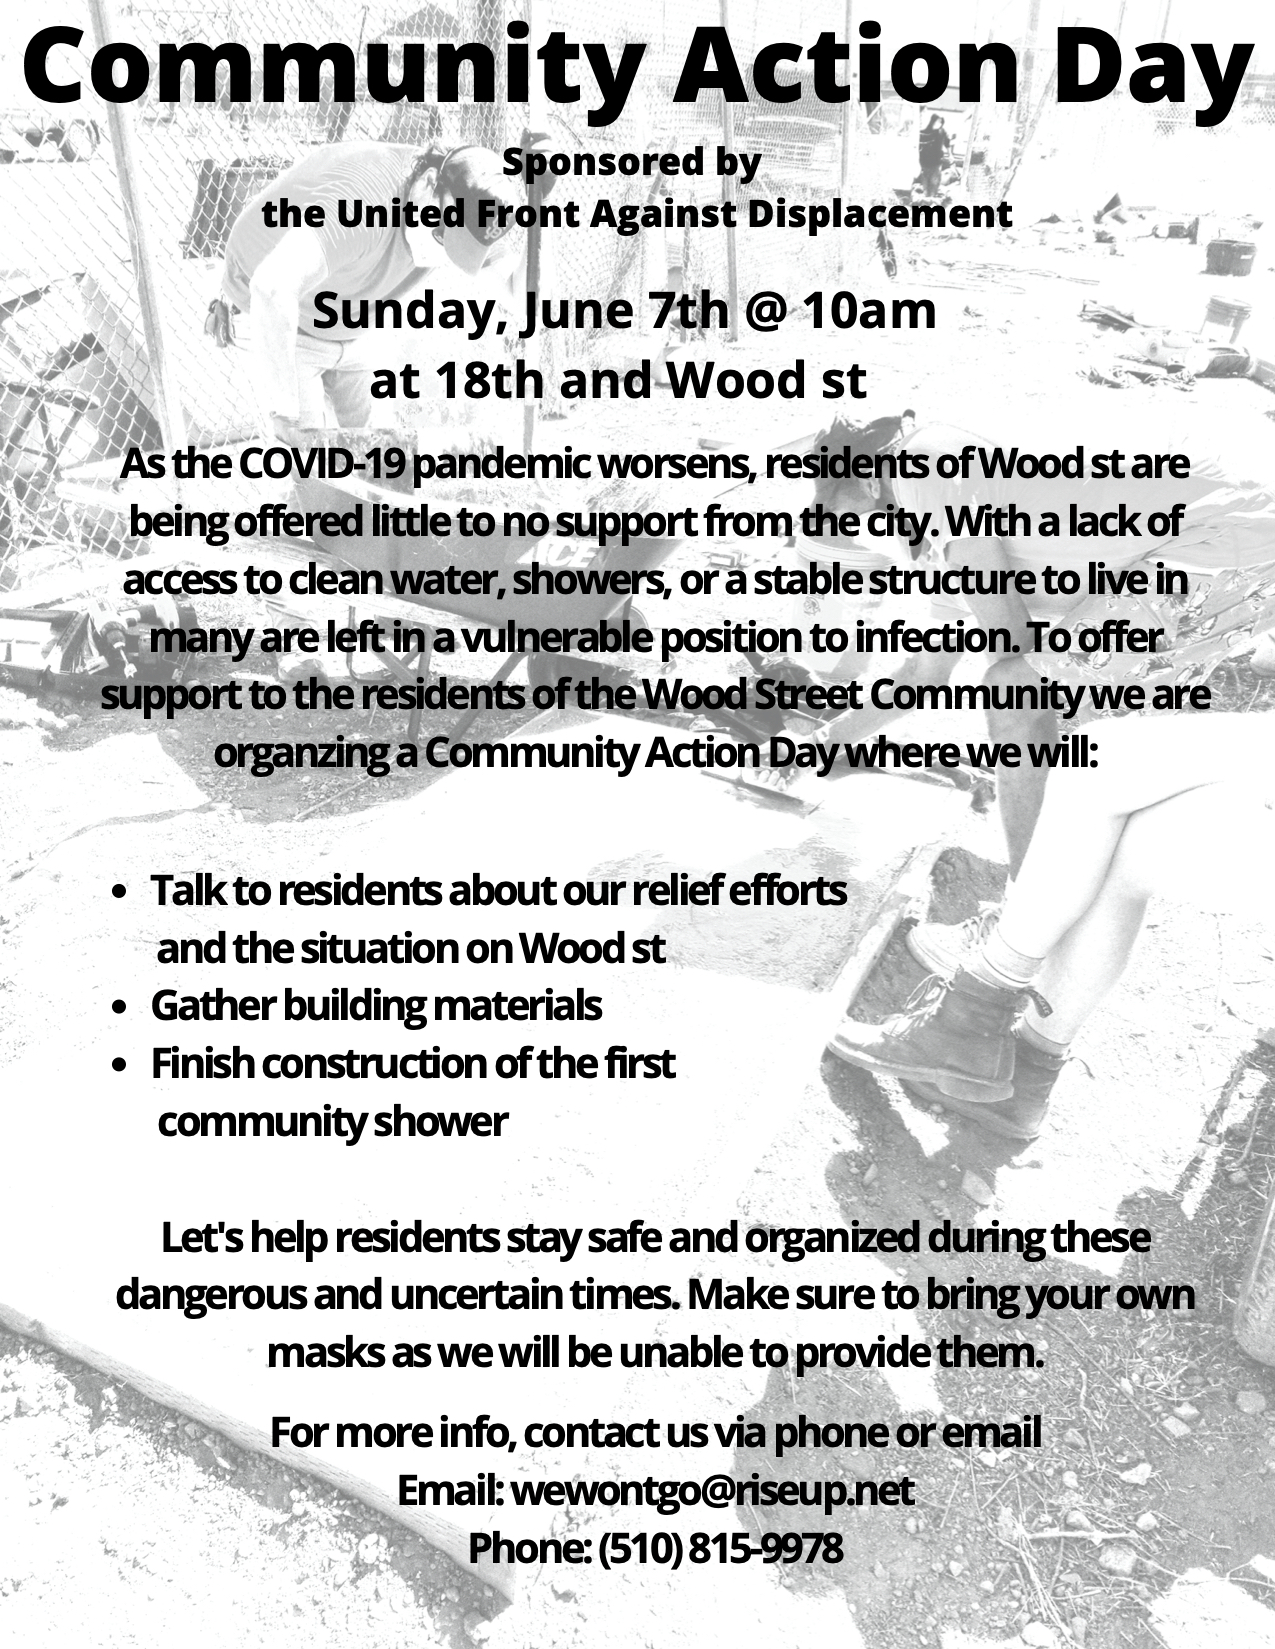 Community Action Day - Wood St.